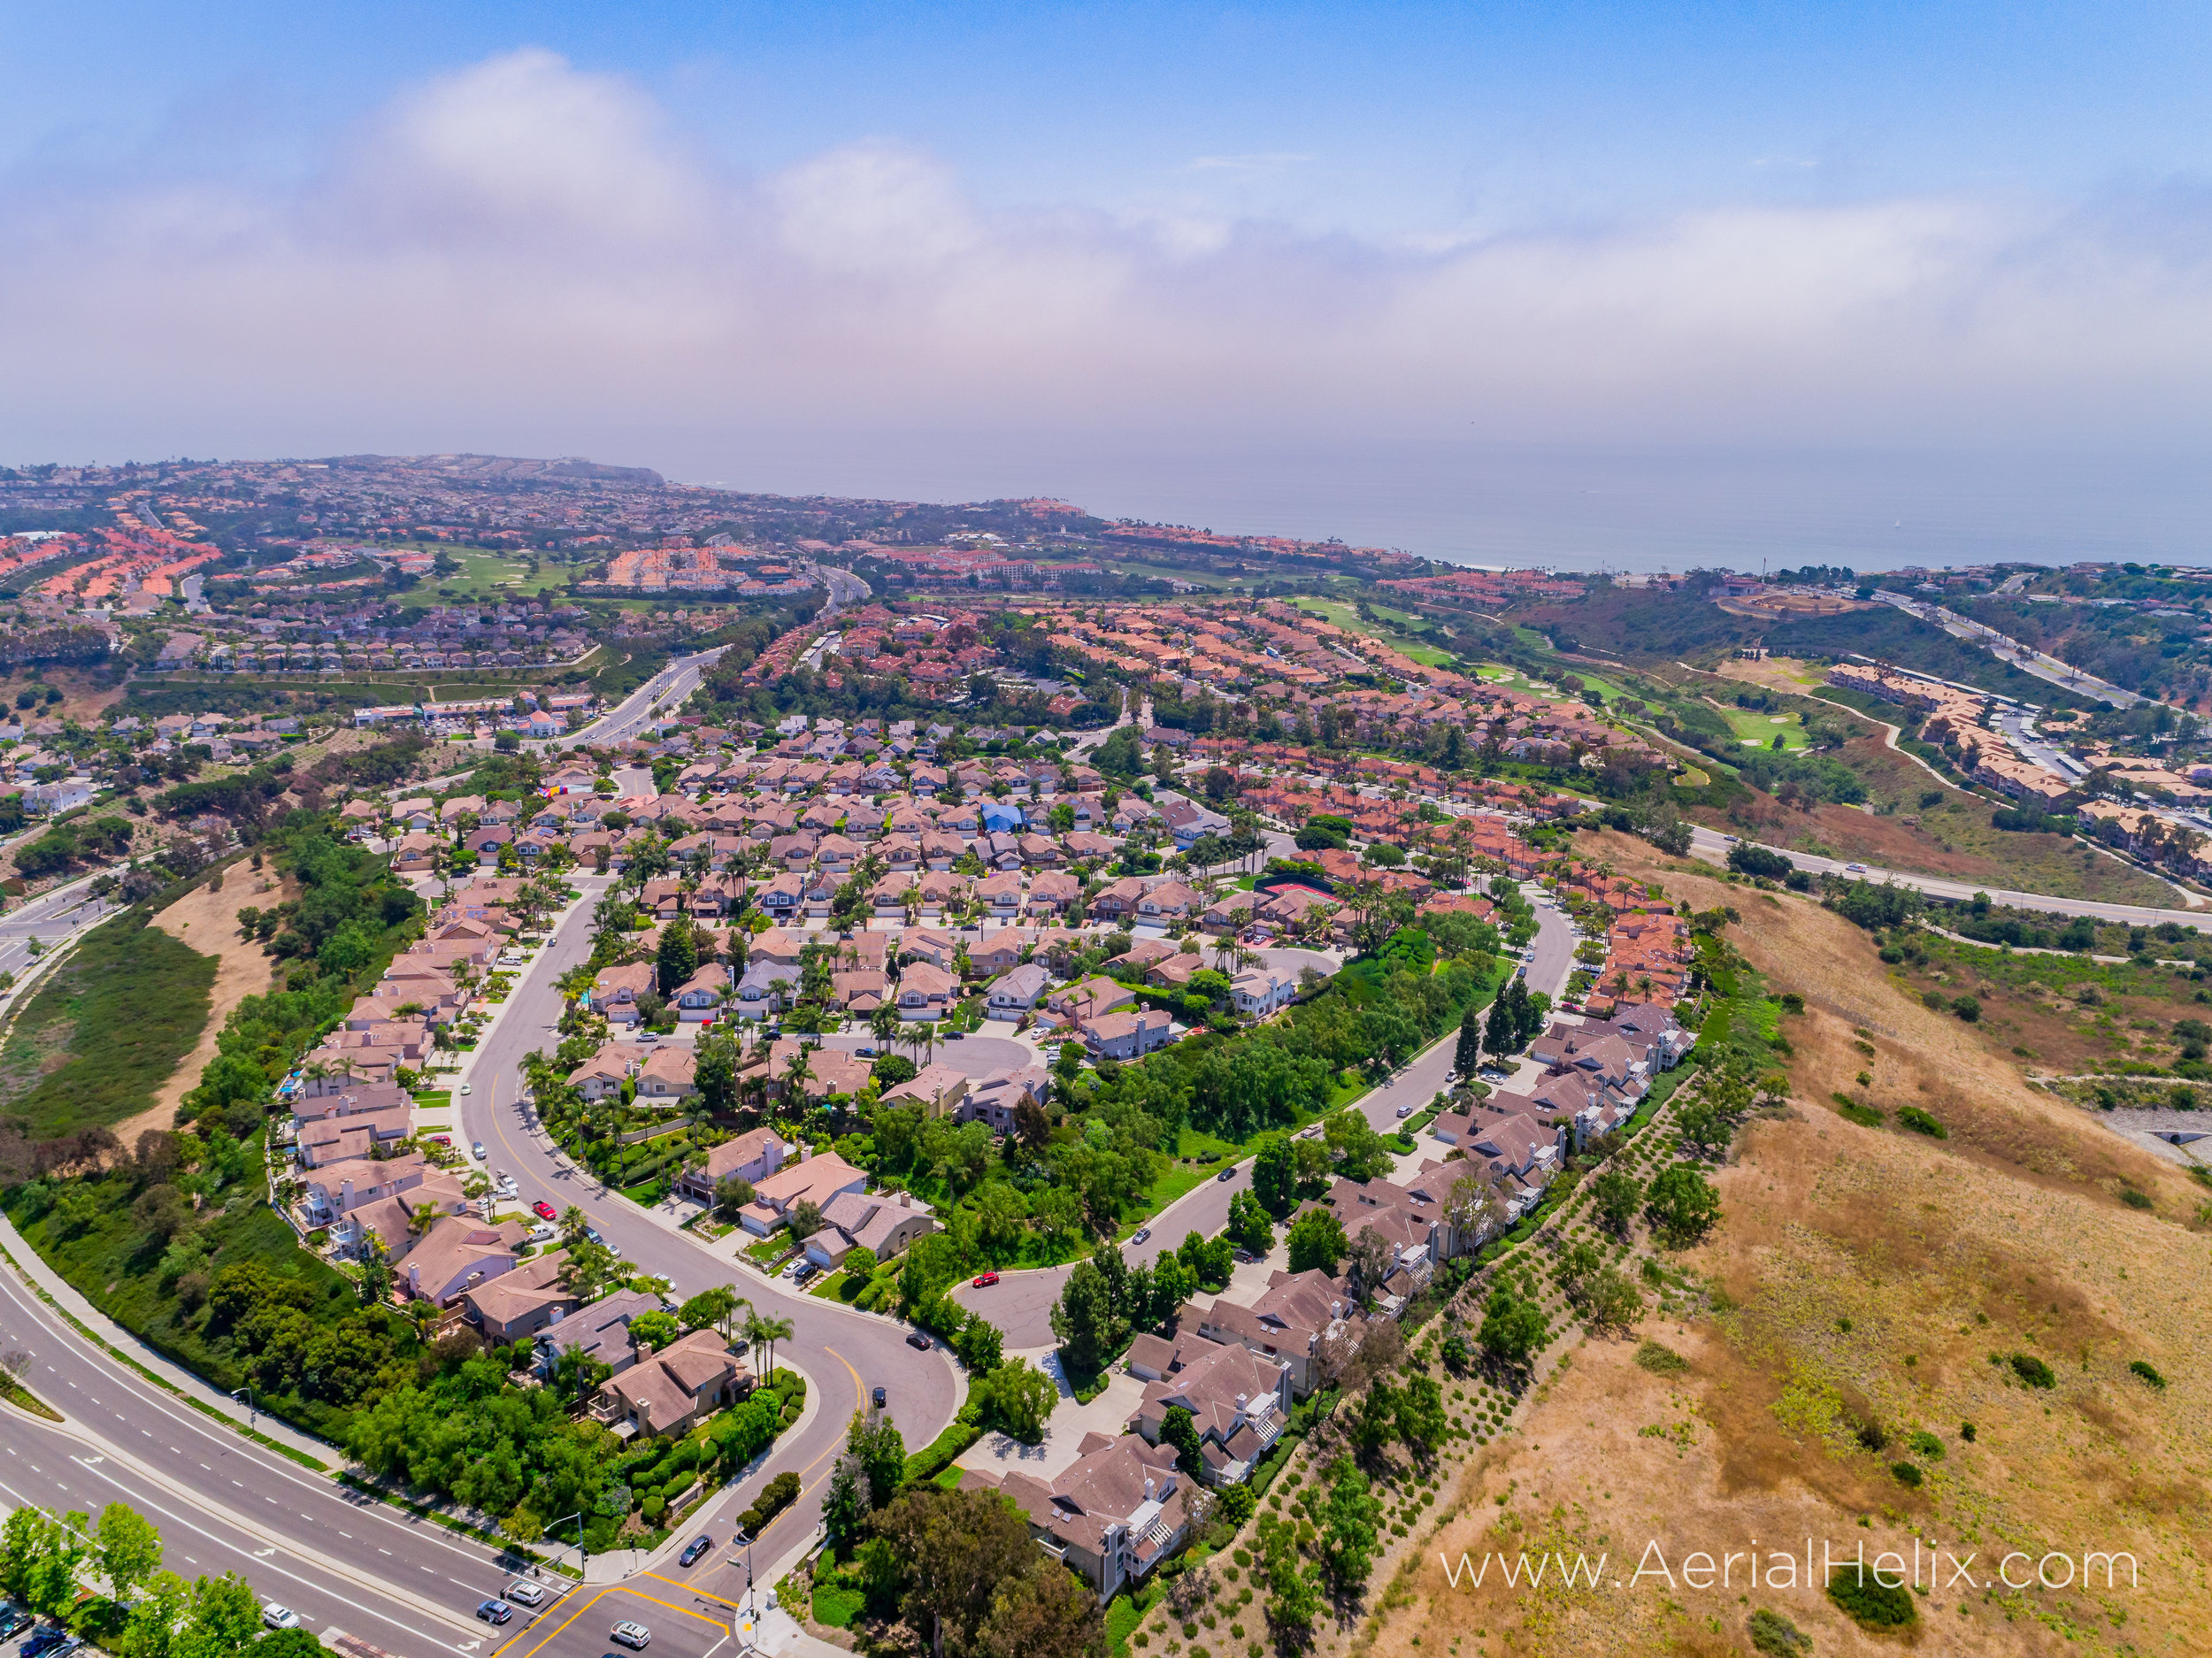 HELIX - Frigate Drive - Real Estate Drone Photographer-1.jpg